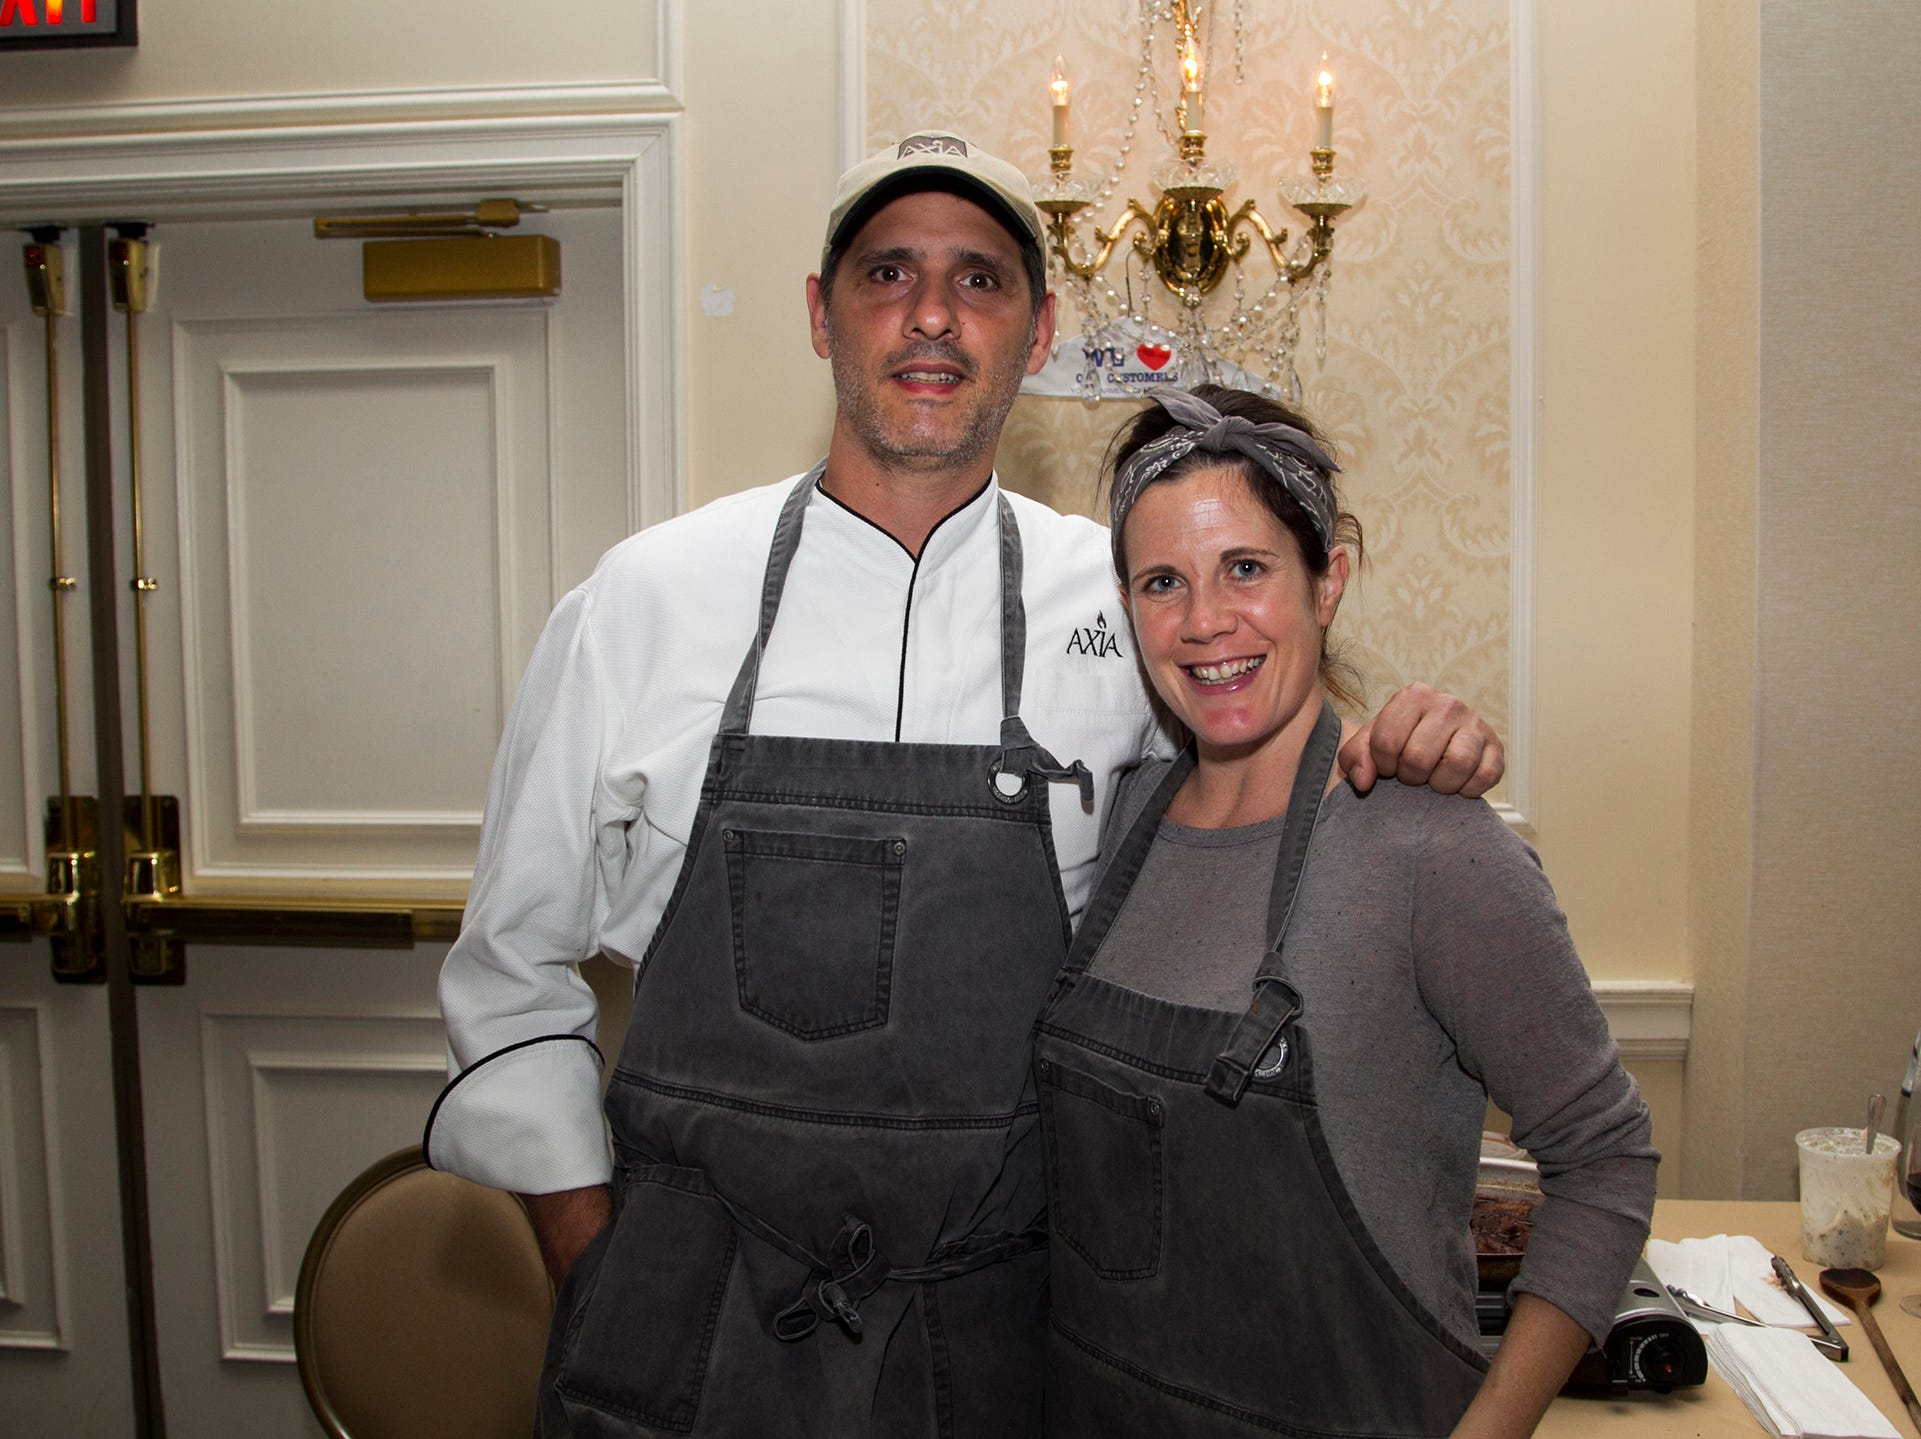 Axia Tavern, Chef Alex Grorant, Tara Ciannella. Kula for Karma's 11th Anniversary gala at Pearl River Hilton. 11/05/2018